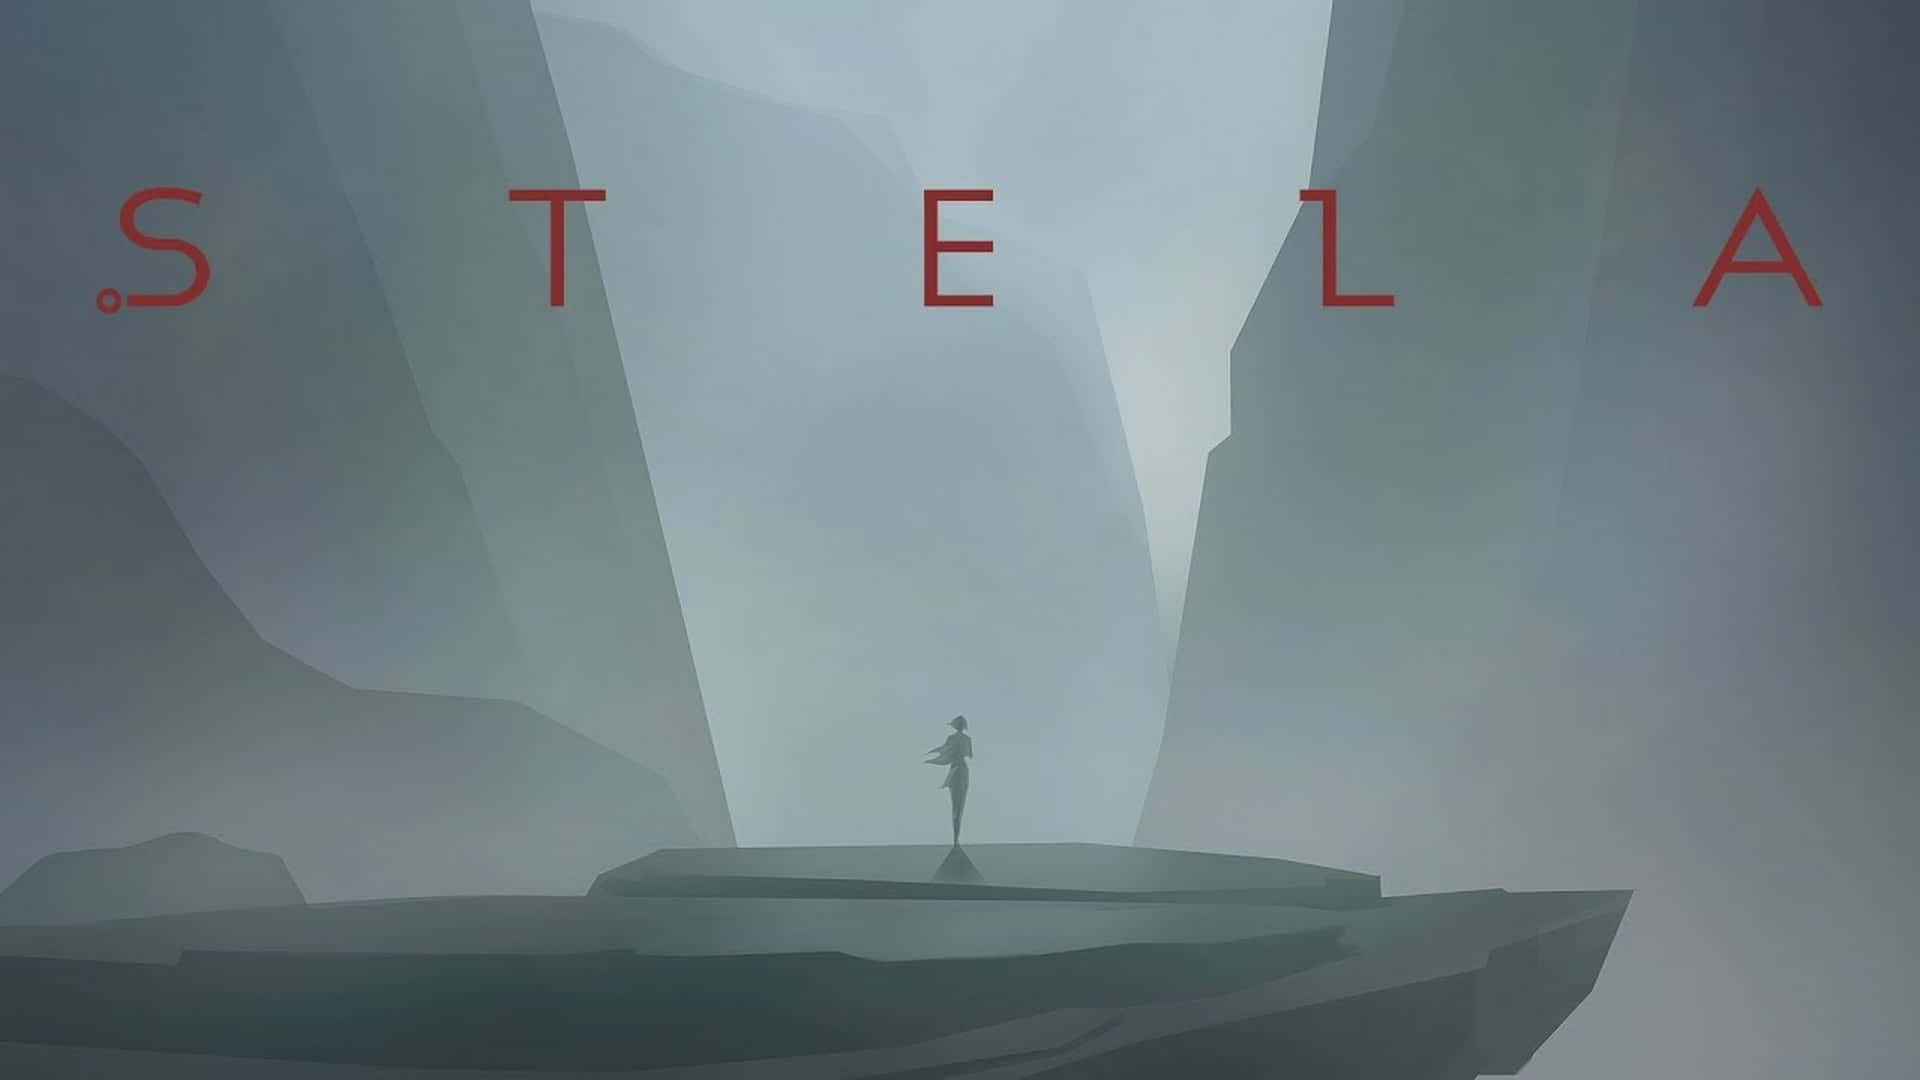 Halo Infinite Co-Developers Launch Stela on Xbox One Today